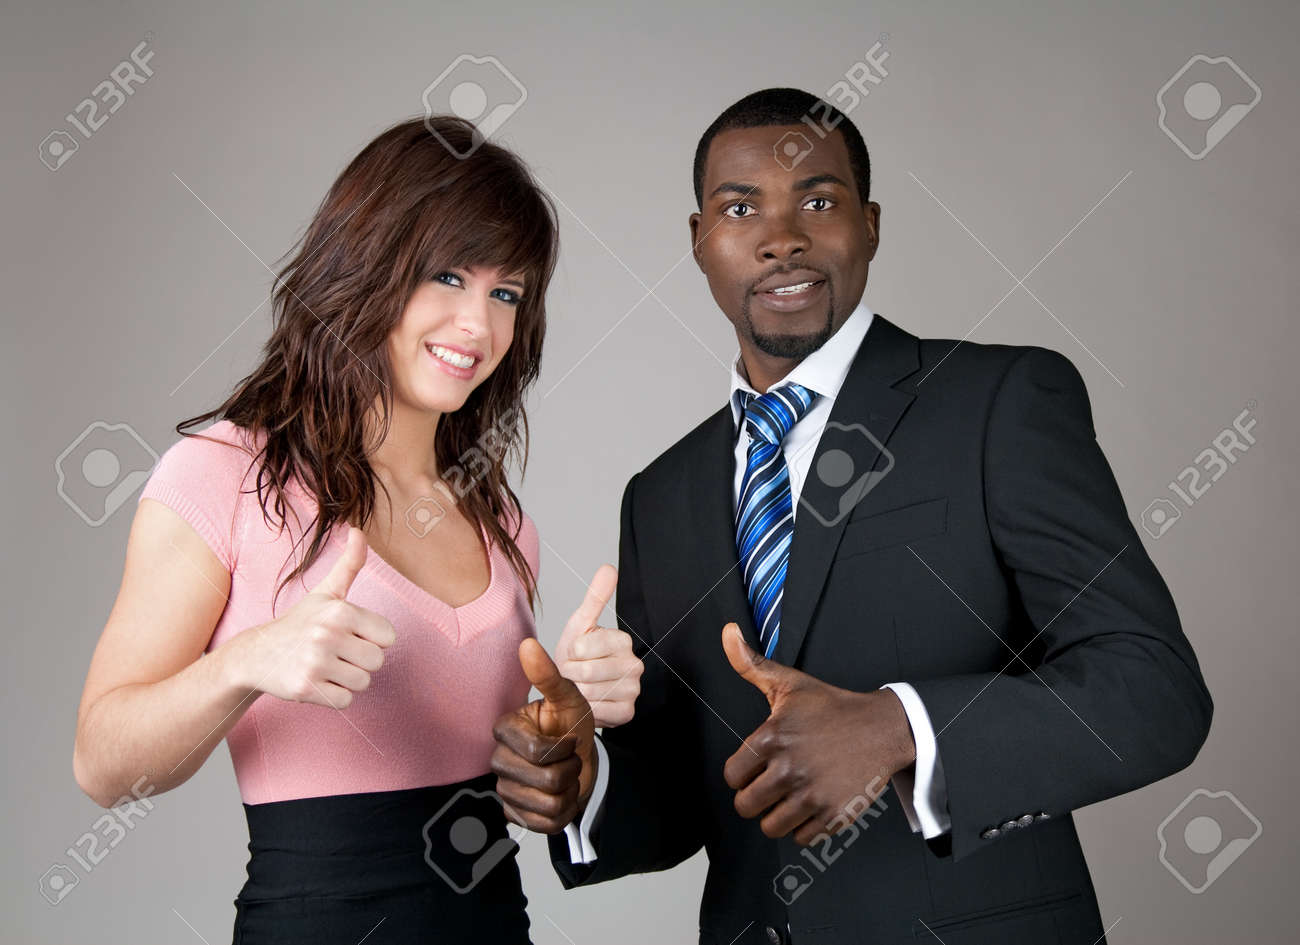 Male and female business partners going thumbs up. Stock Photo - 9455343